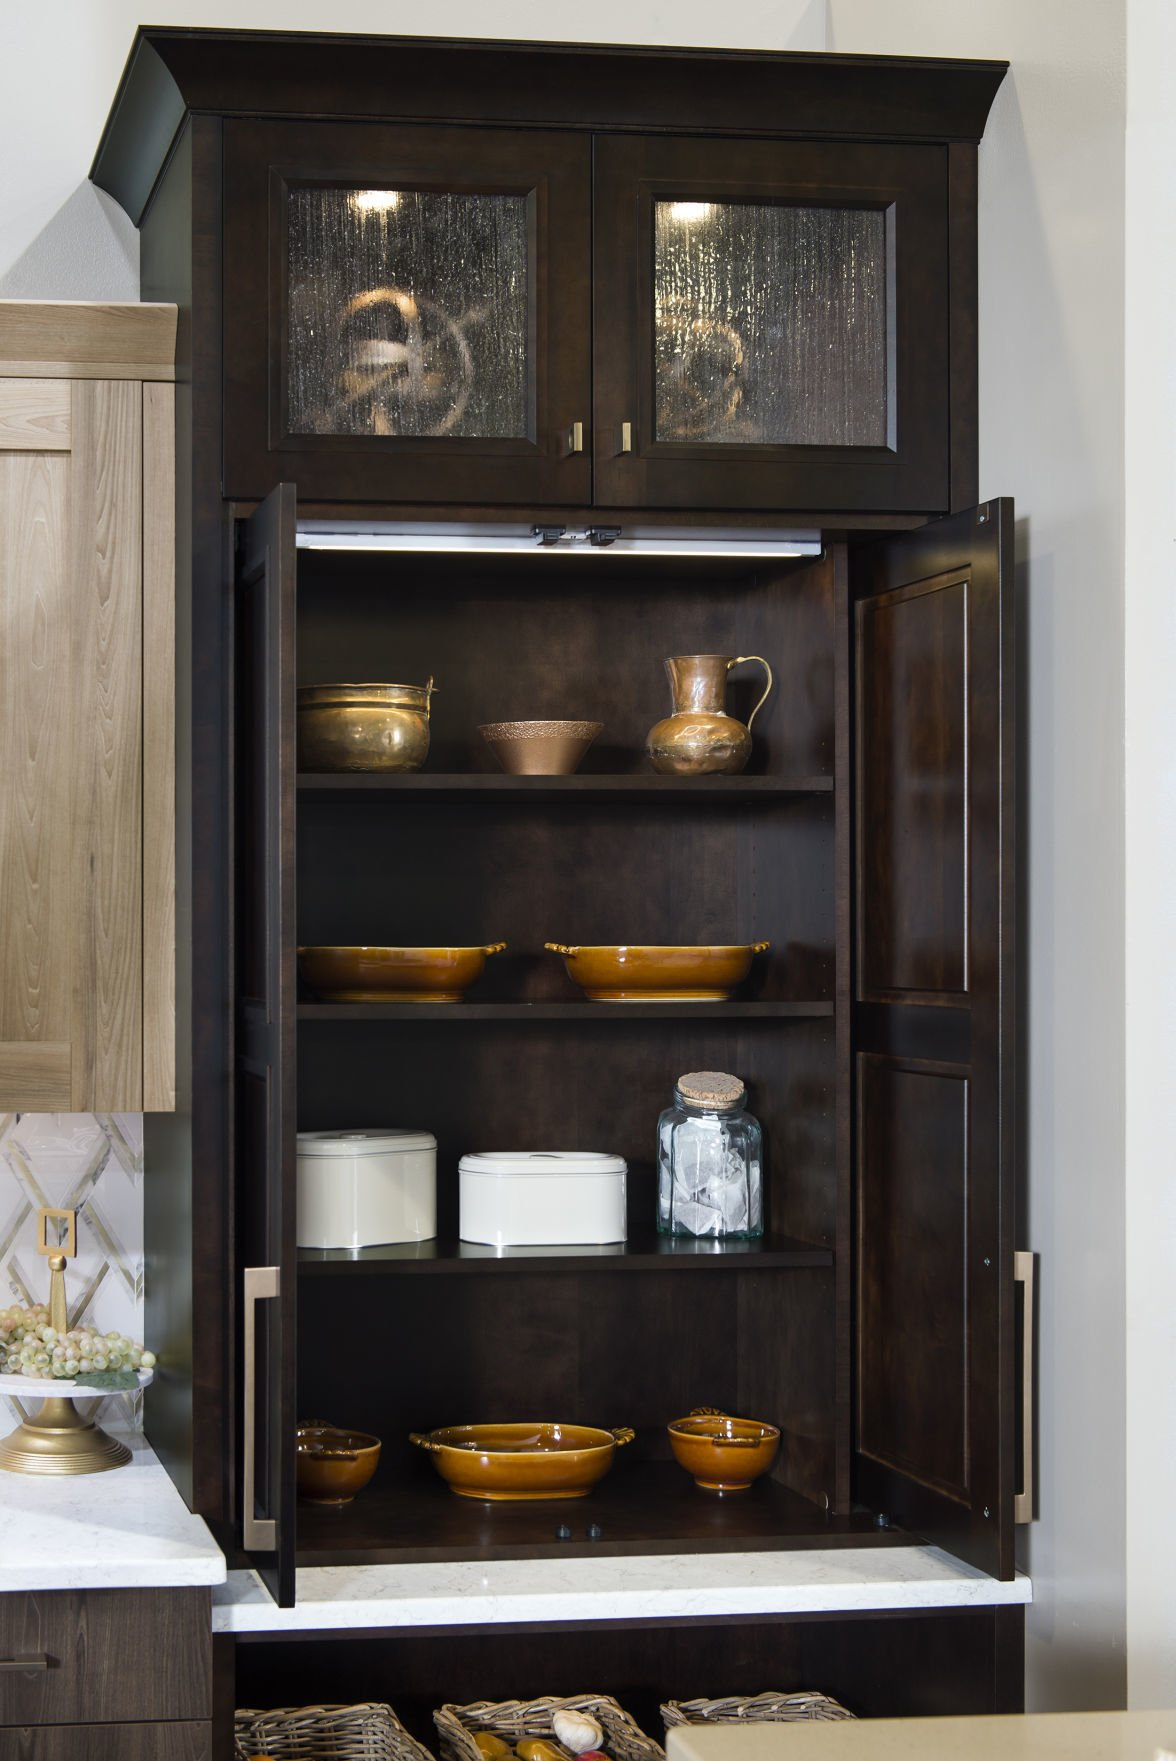 Special features you can add to kitchen cabinets   Home ...